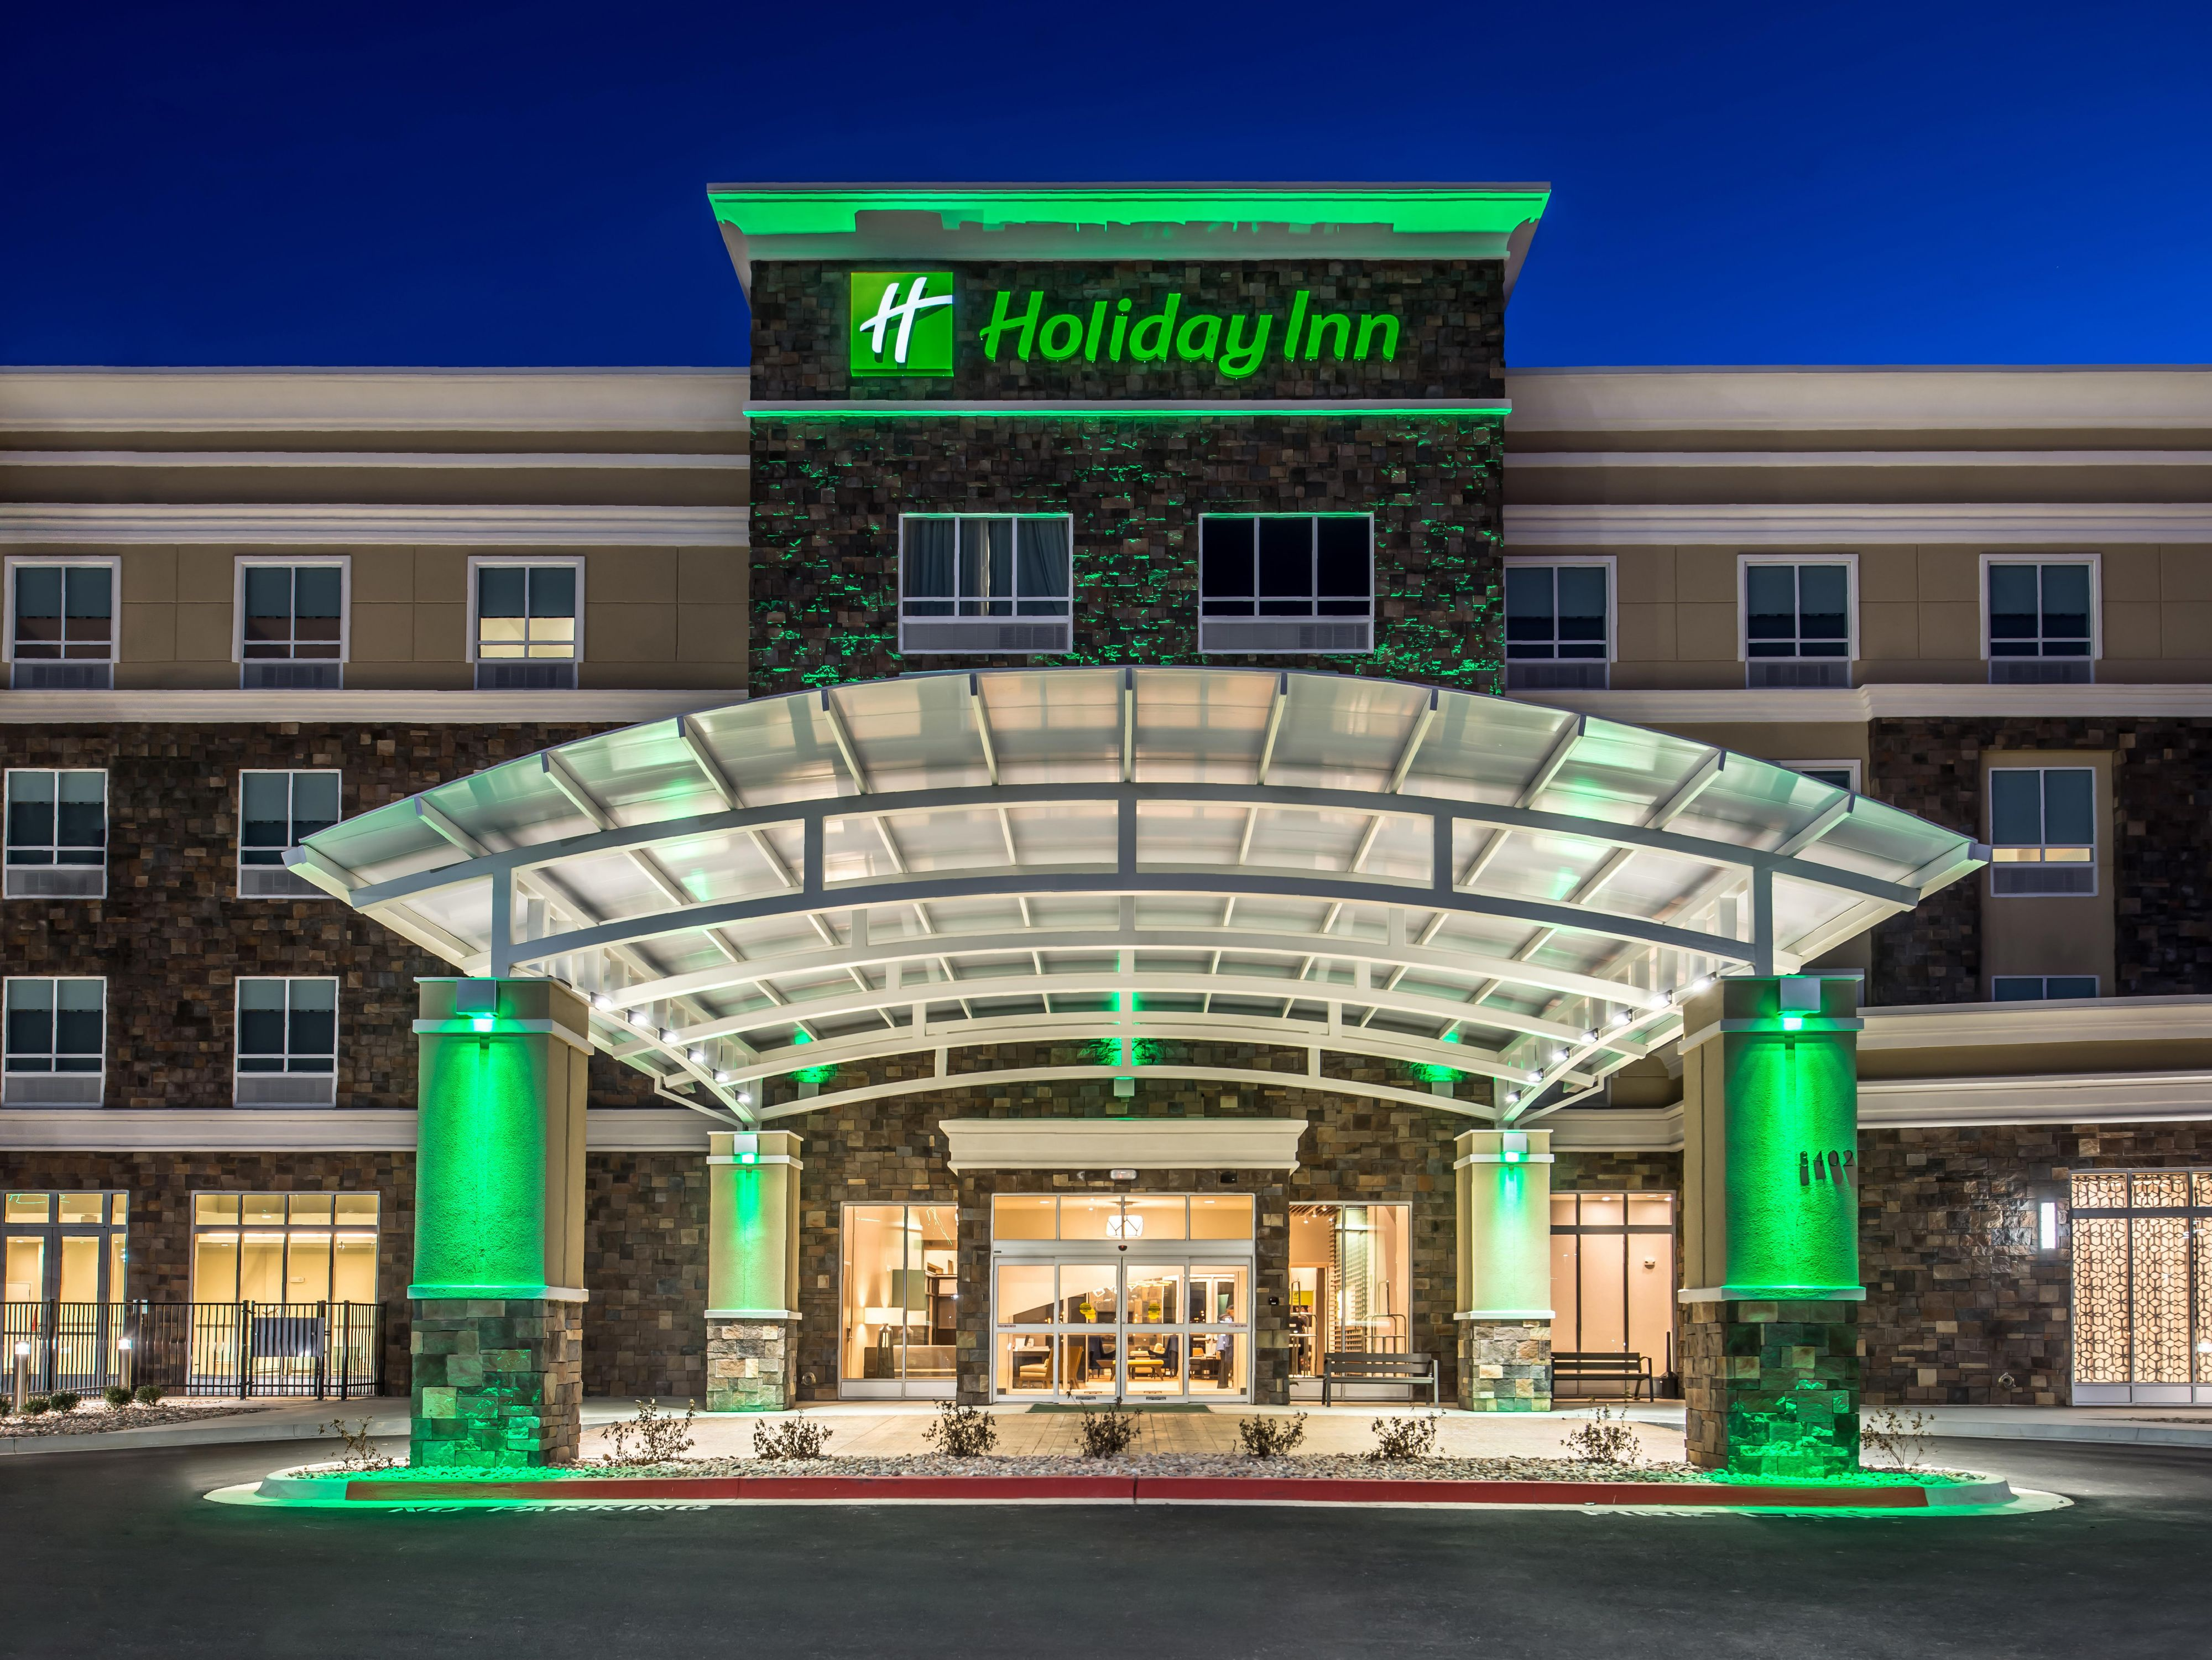 holidayinnexpress west hotel ihg express hoteldetail hotels phxbe us buckeye and valley holiday comforter phoenix green inn by az comfort suites en